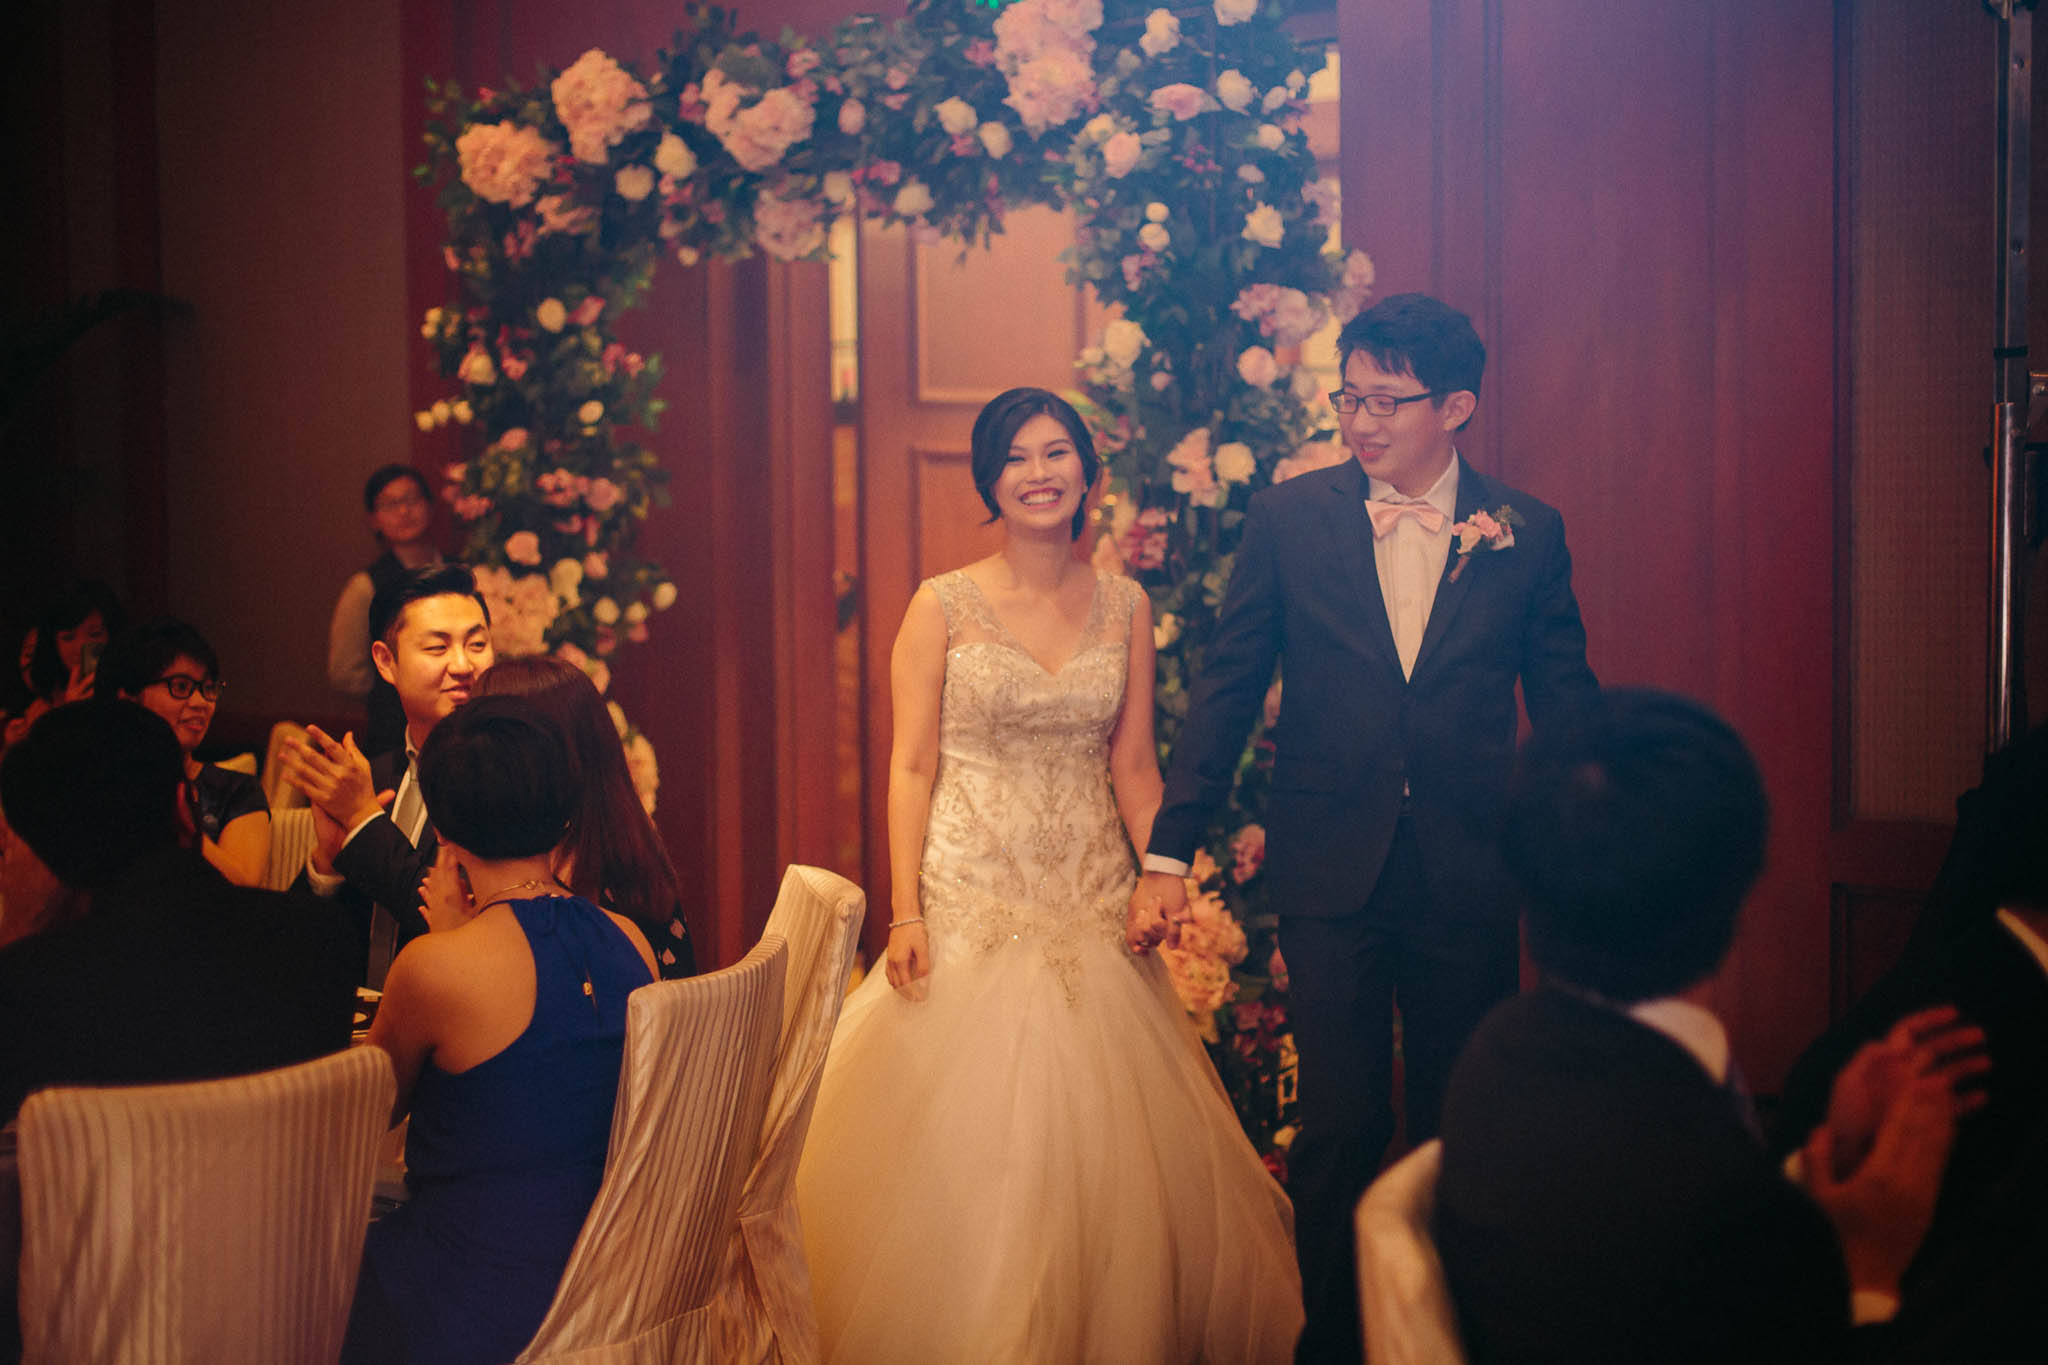 singapore-wedding-photographer-pre-wedding-ashley-sean-049.jpg